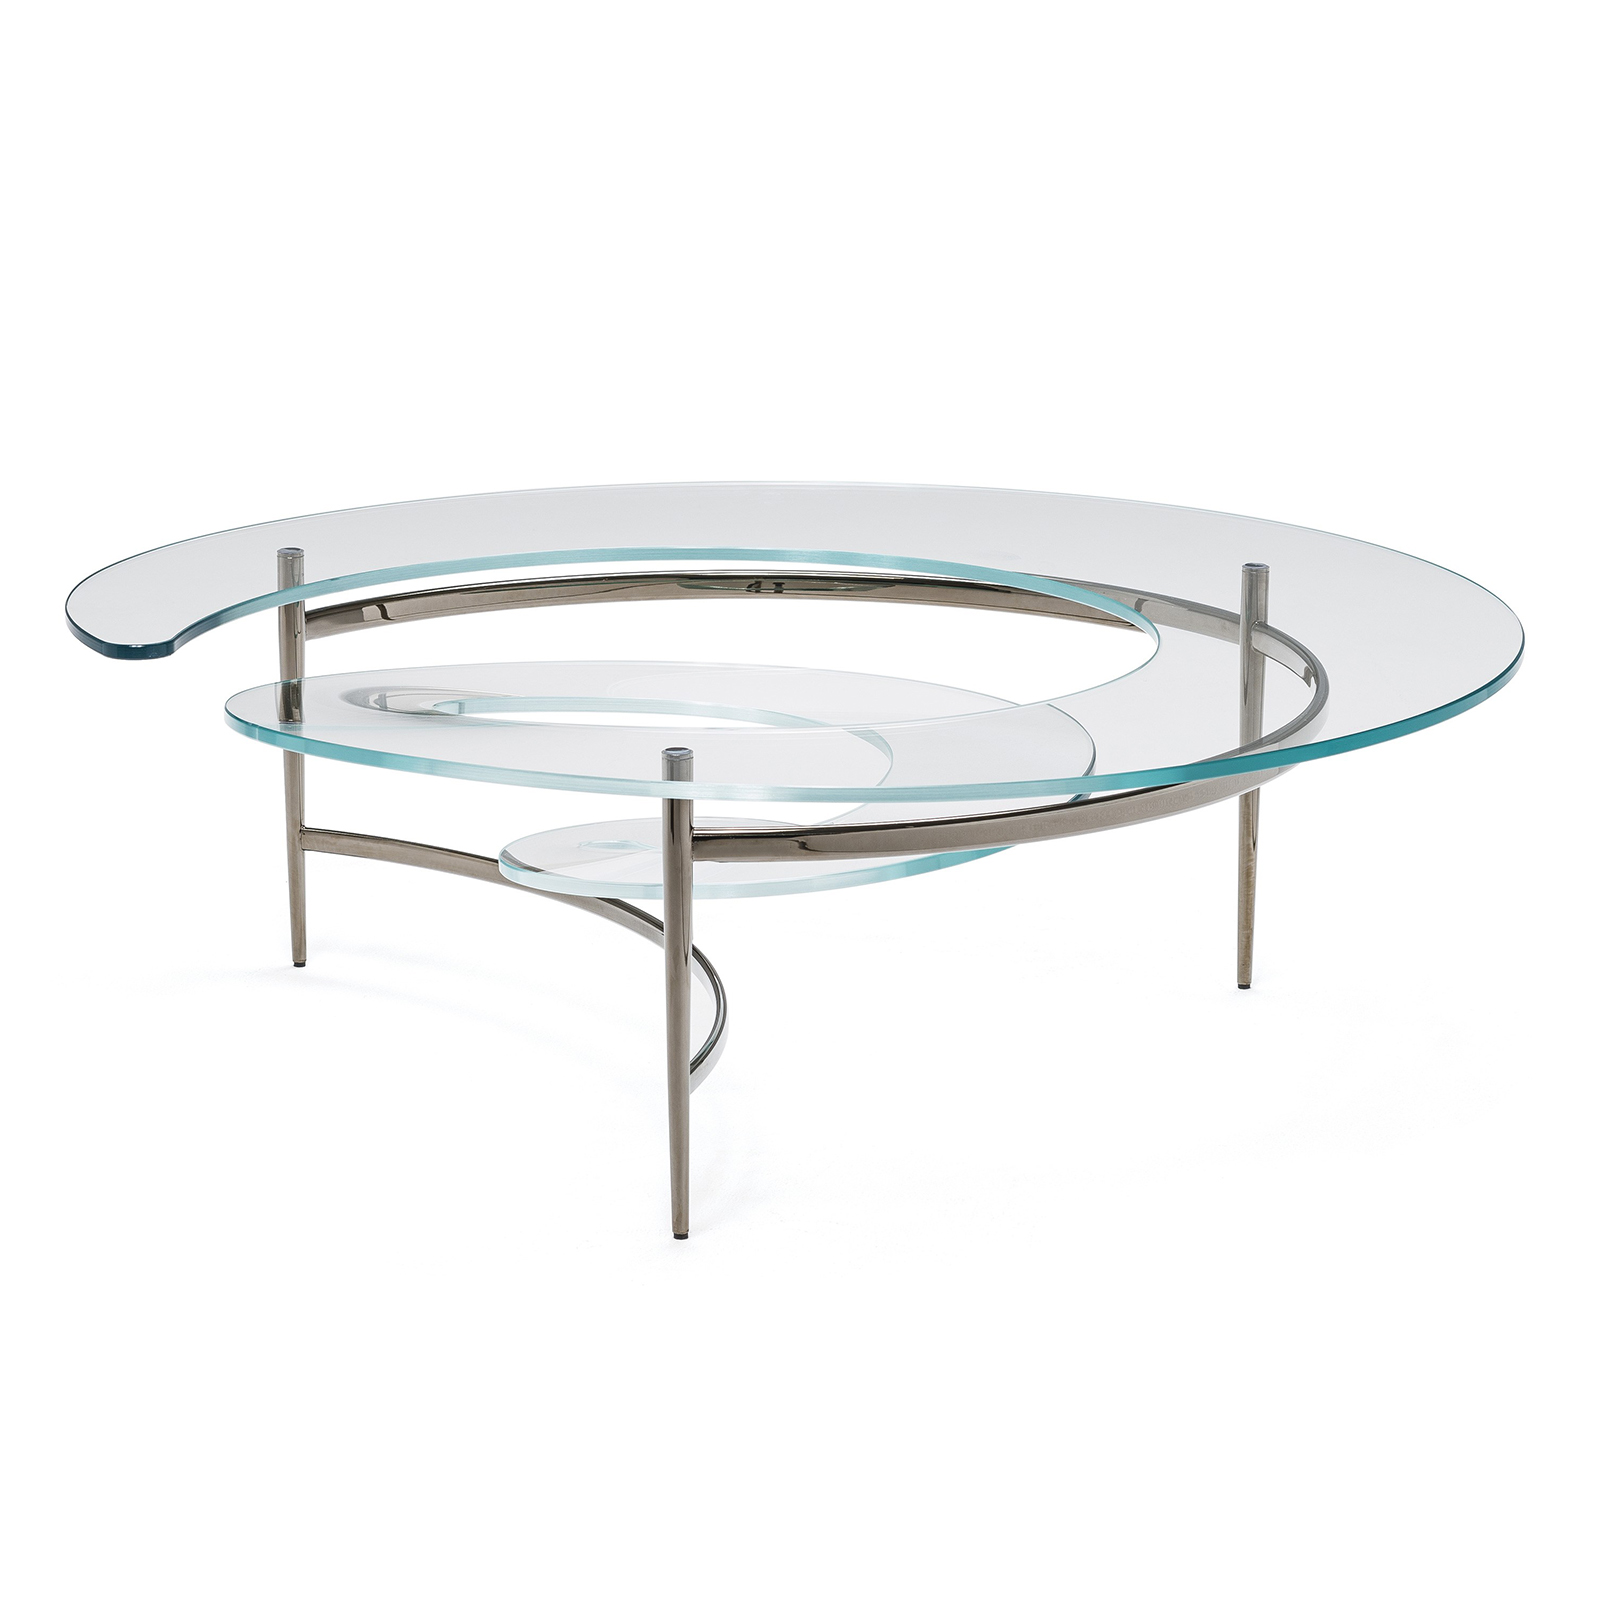 Table basse design en verre spirale mobilier de luxe for Table haute en verre